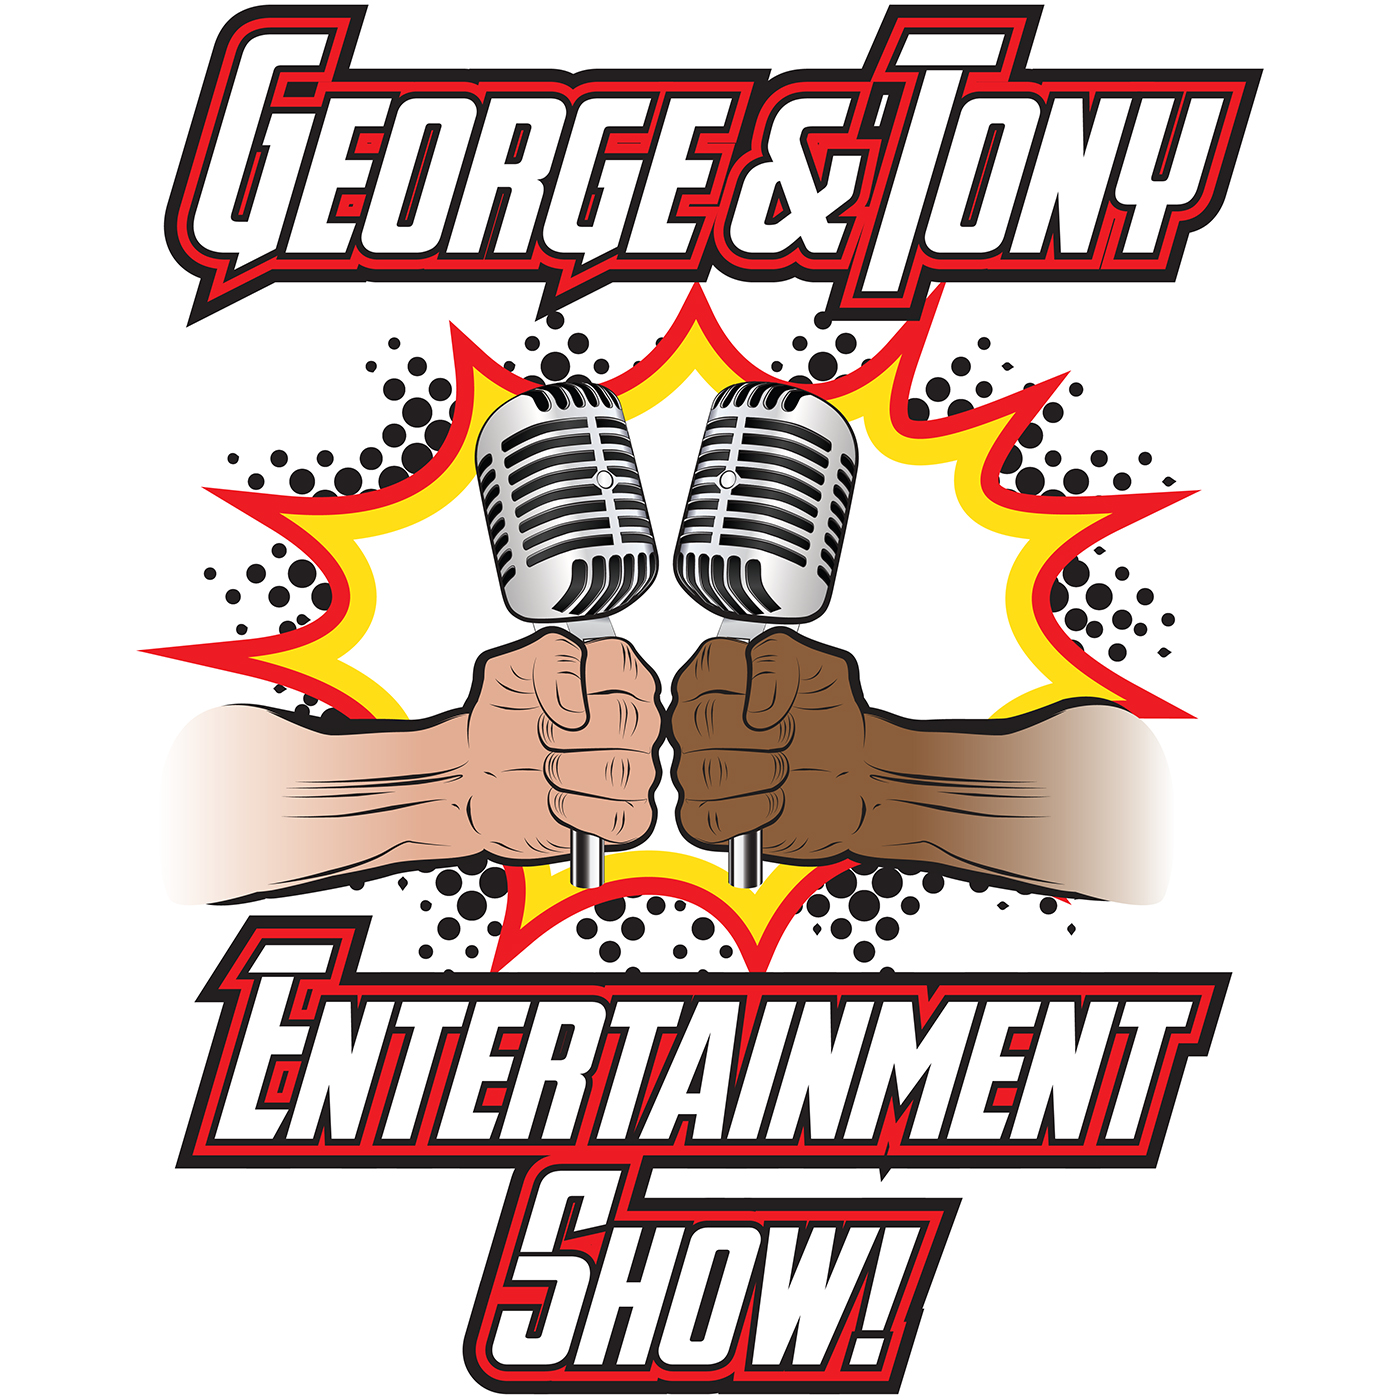 George and Tony Entertainment Show #45